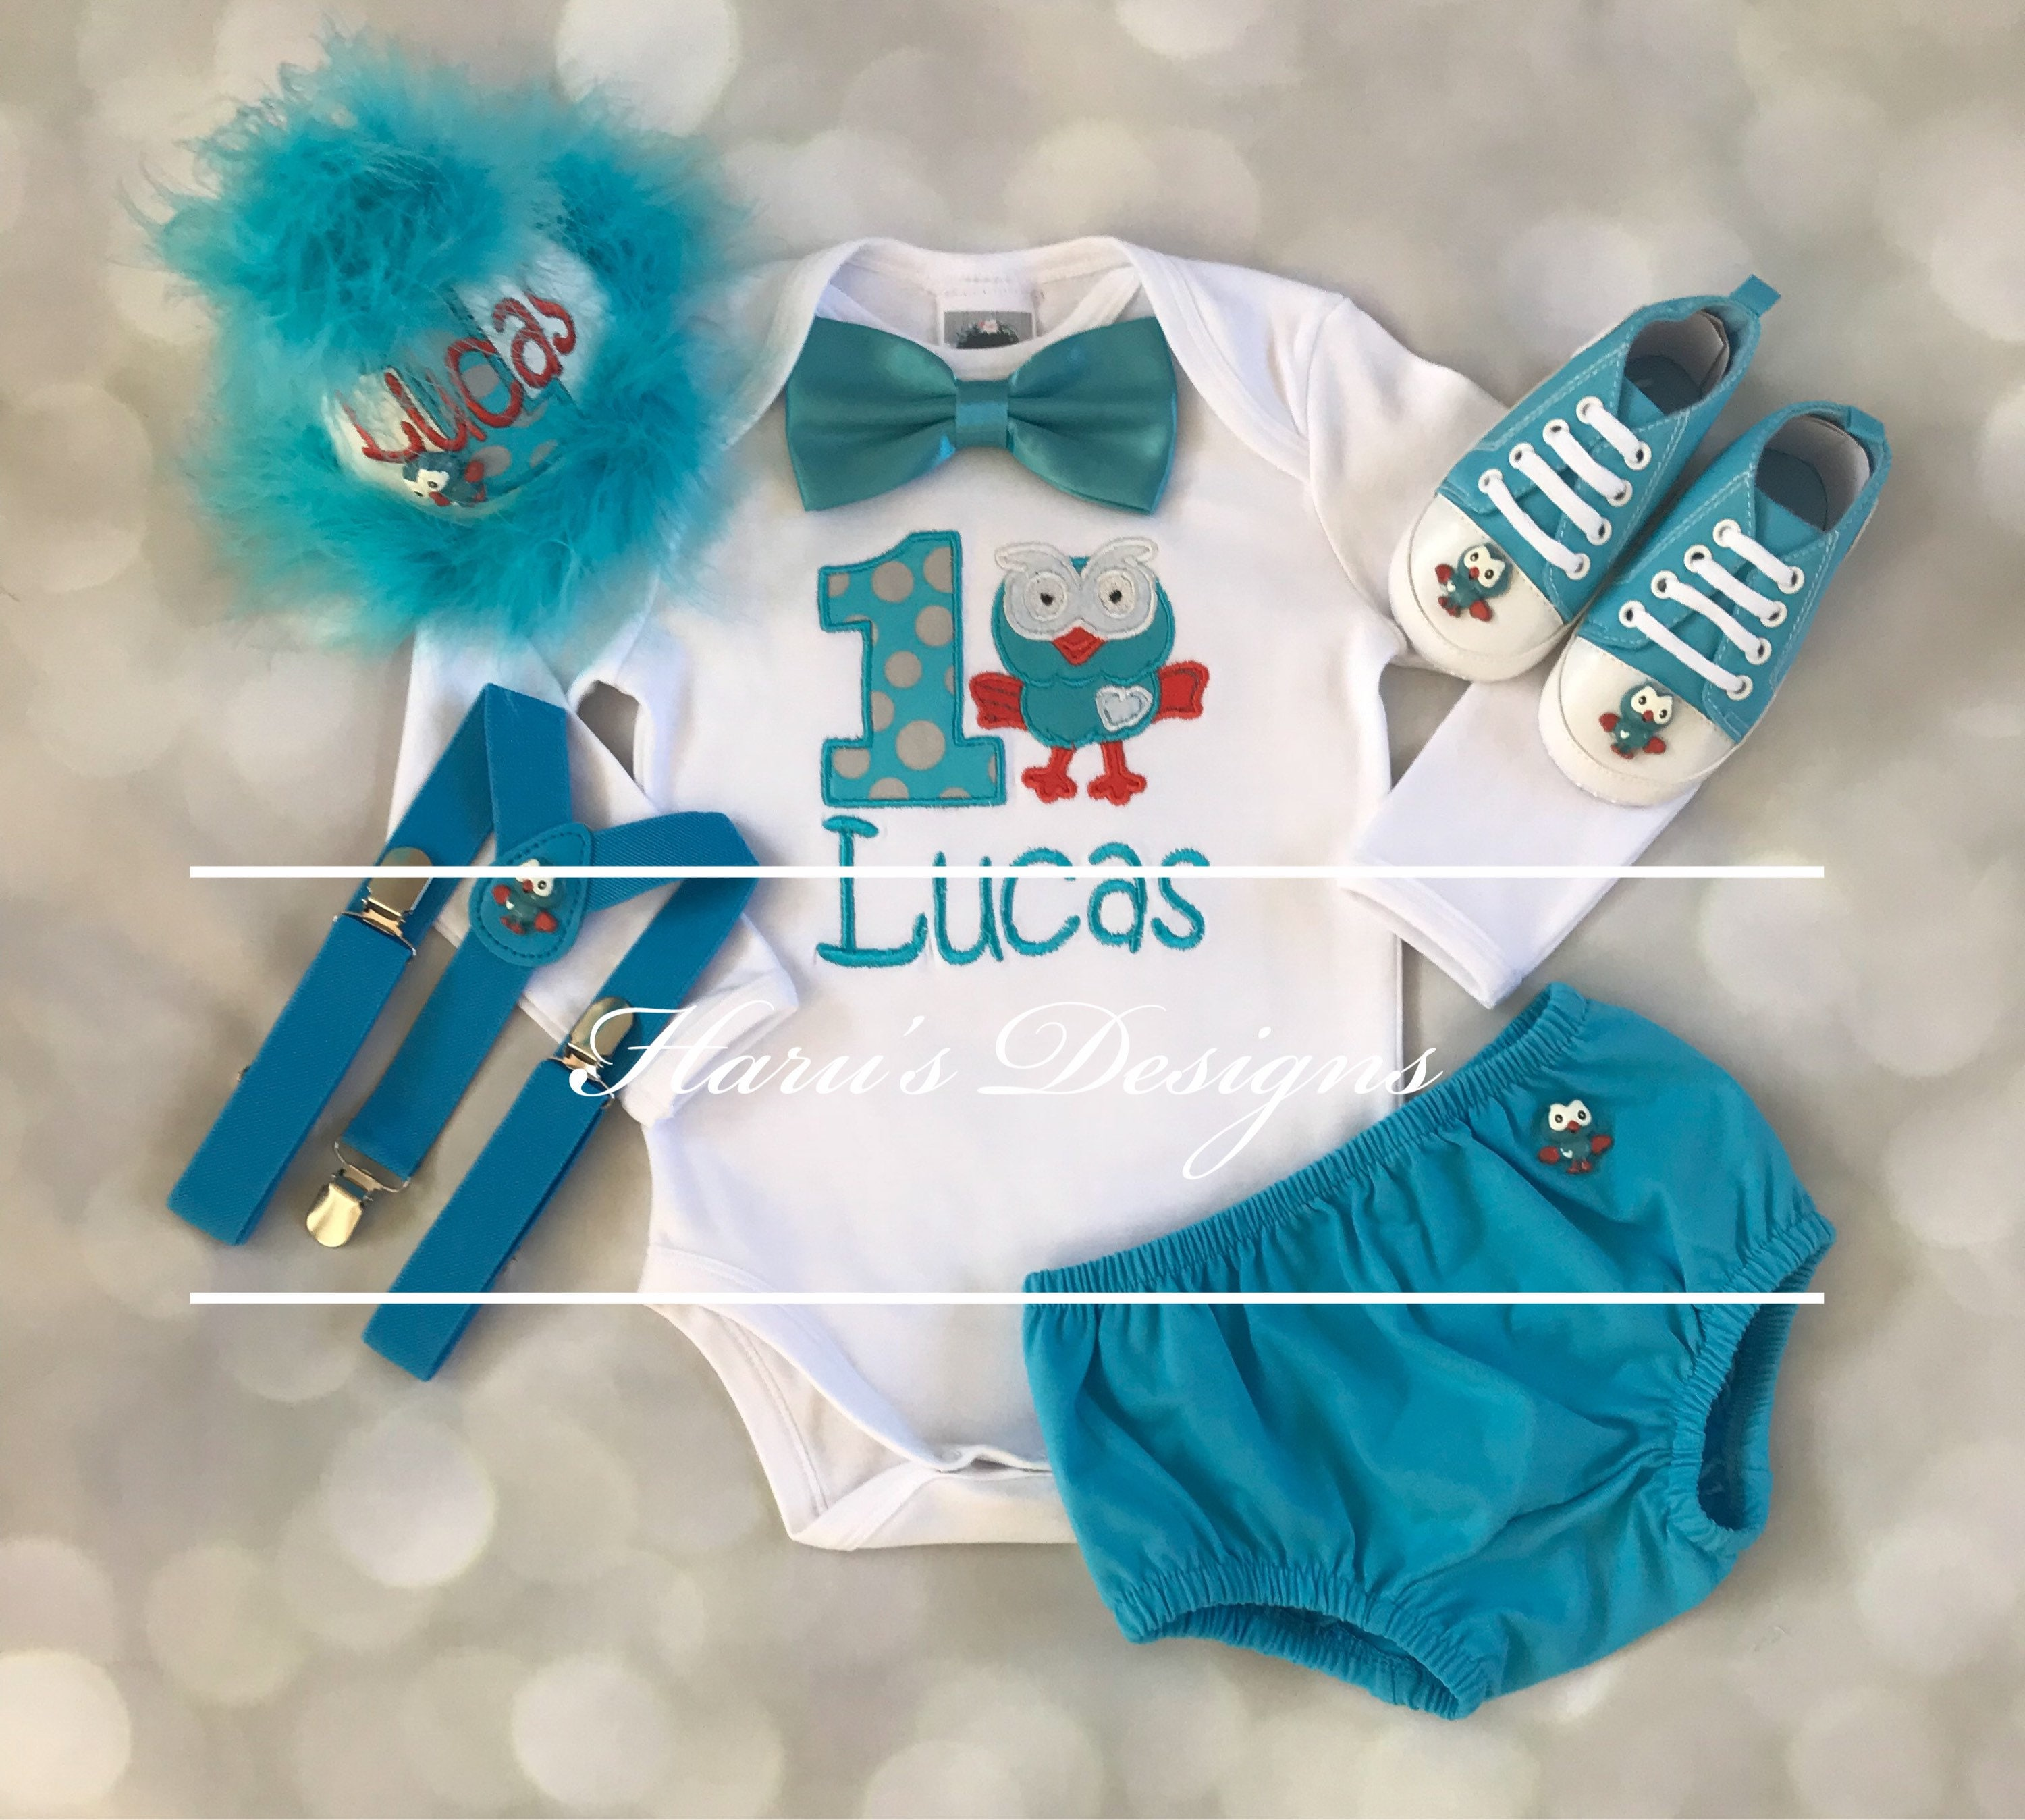 6pc set Giggle Birthday and Hoot inspired boys Birthday Giggle outfit- includes personalised Top,bowtie,diaper cover,suspenders ,shoes,partyhat 1e97d0